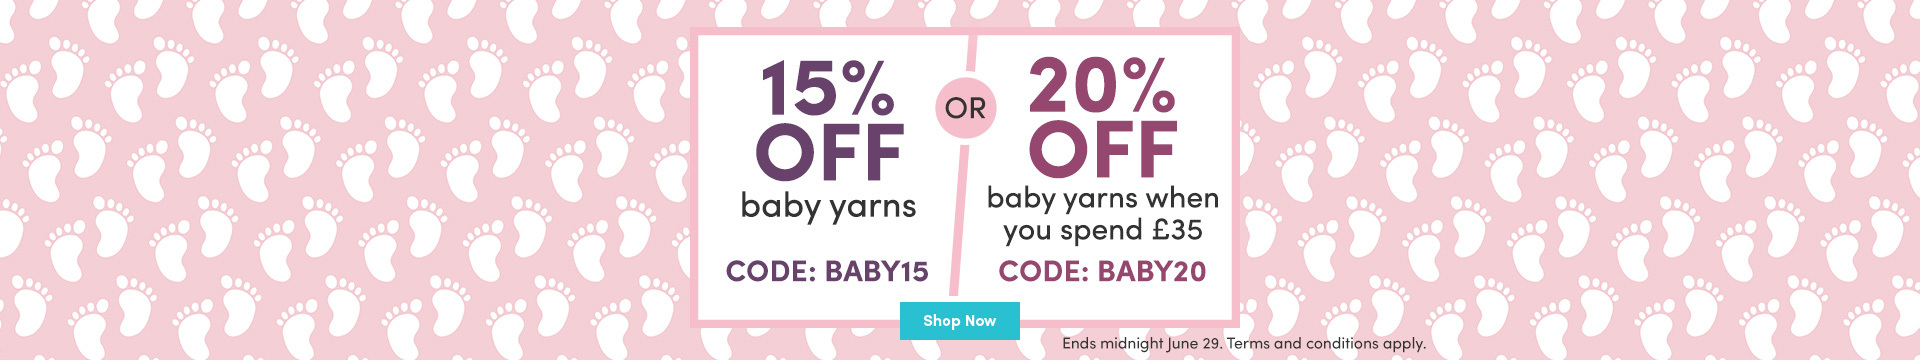 LK Marketing WW - 20% off baby yarns